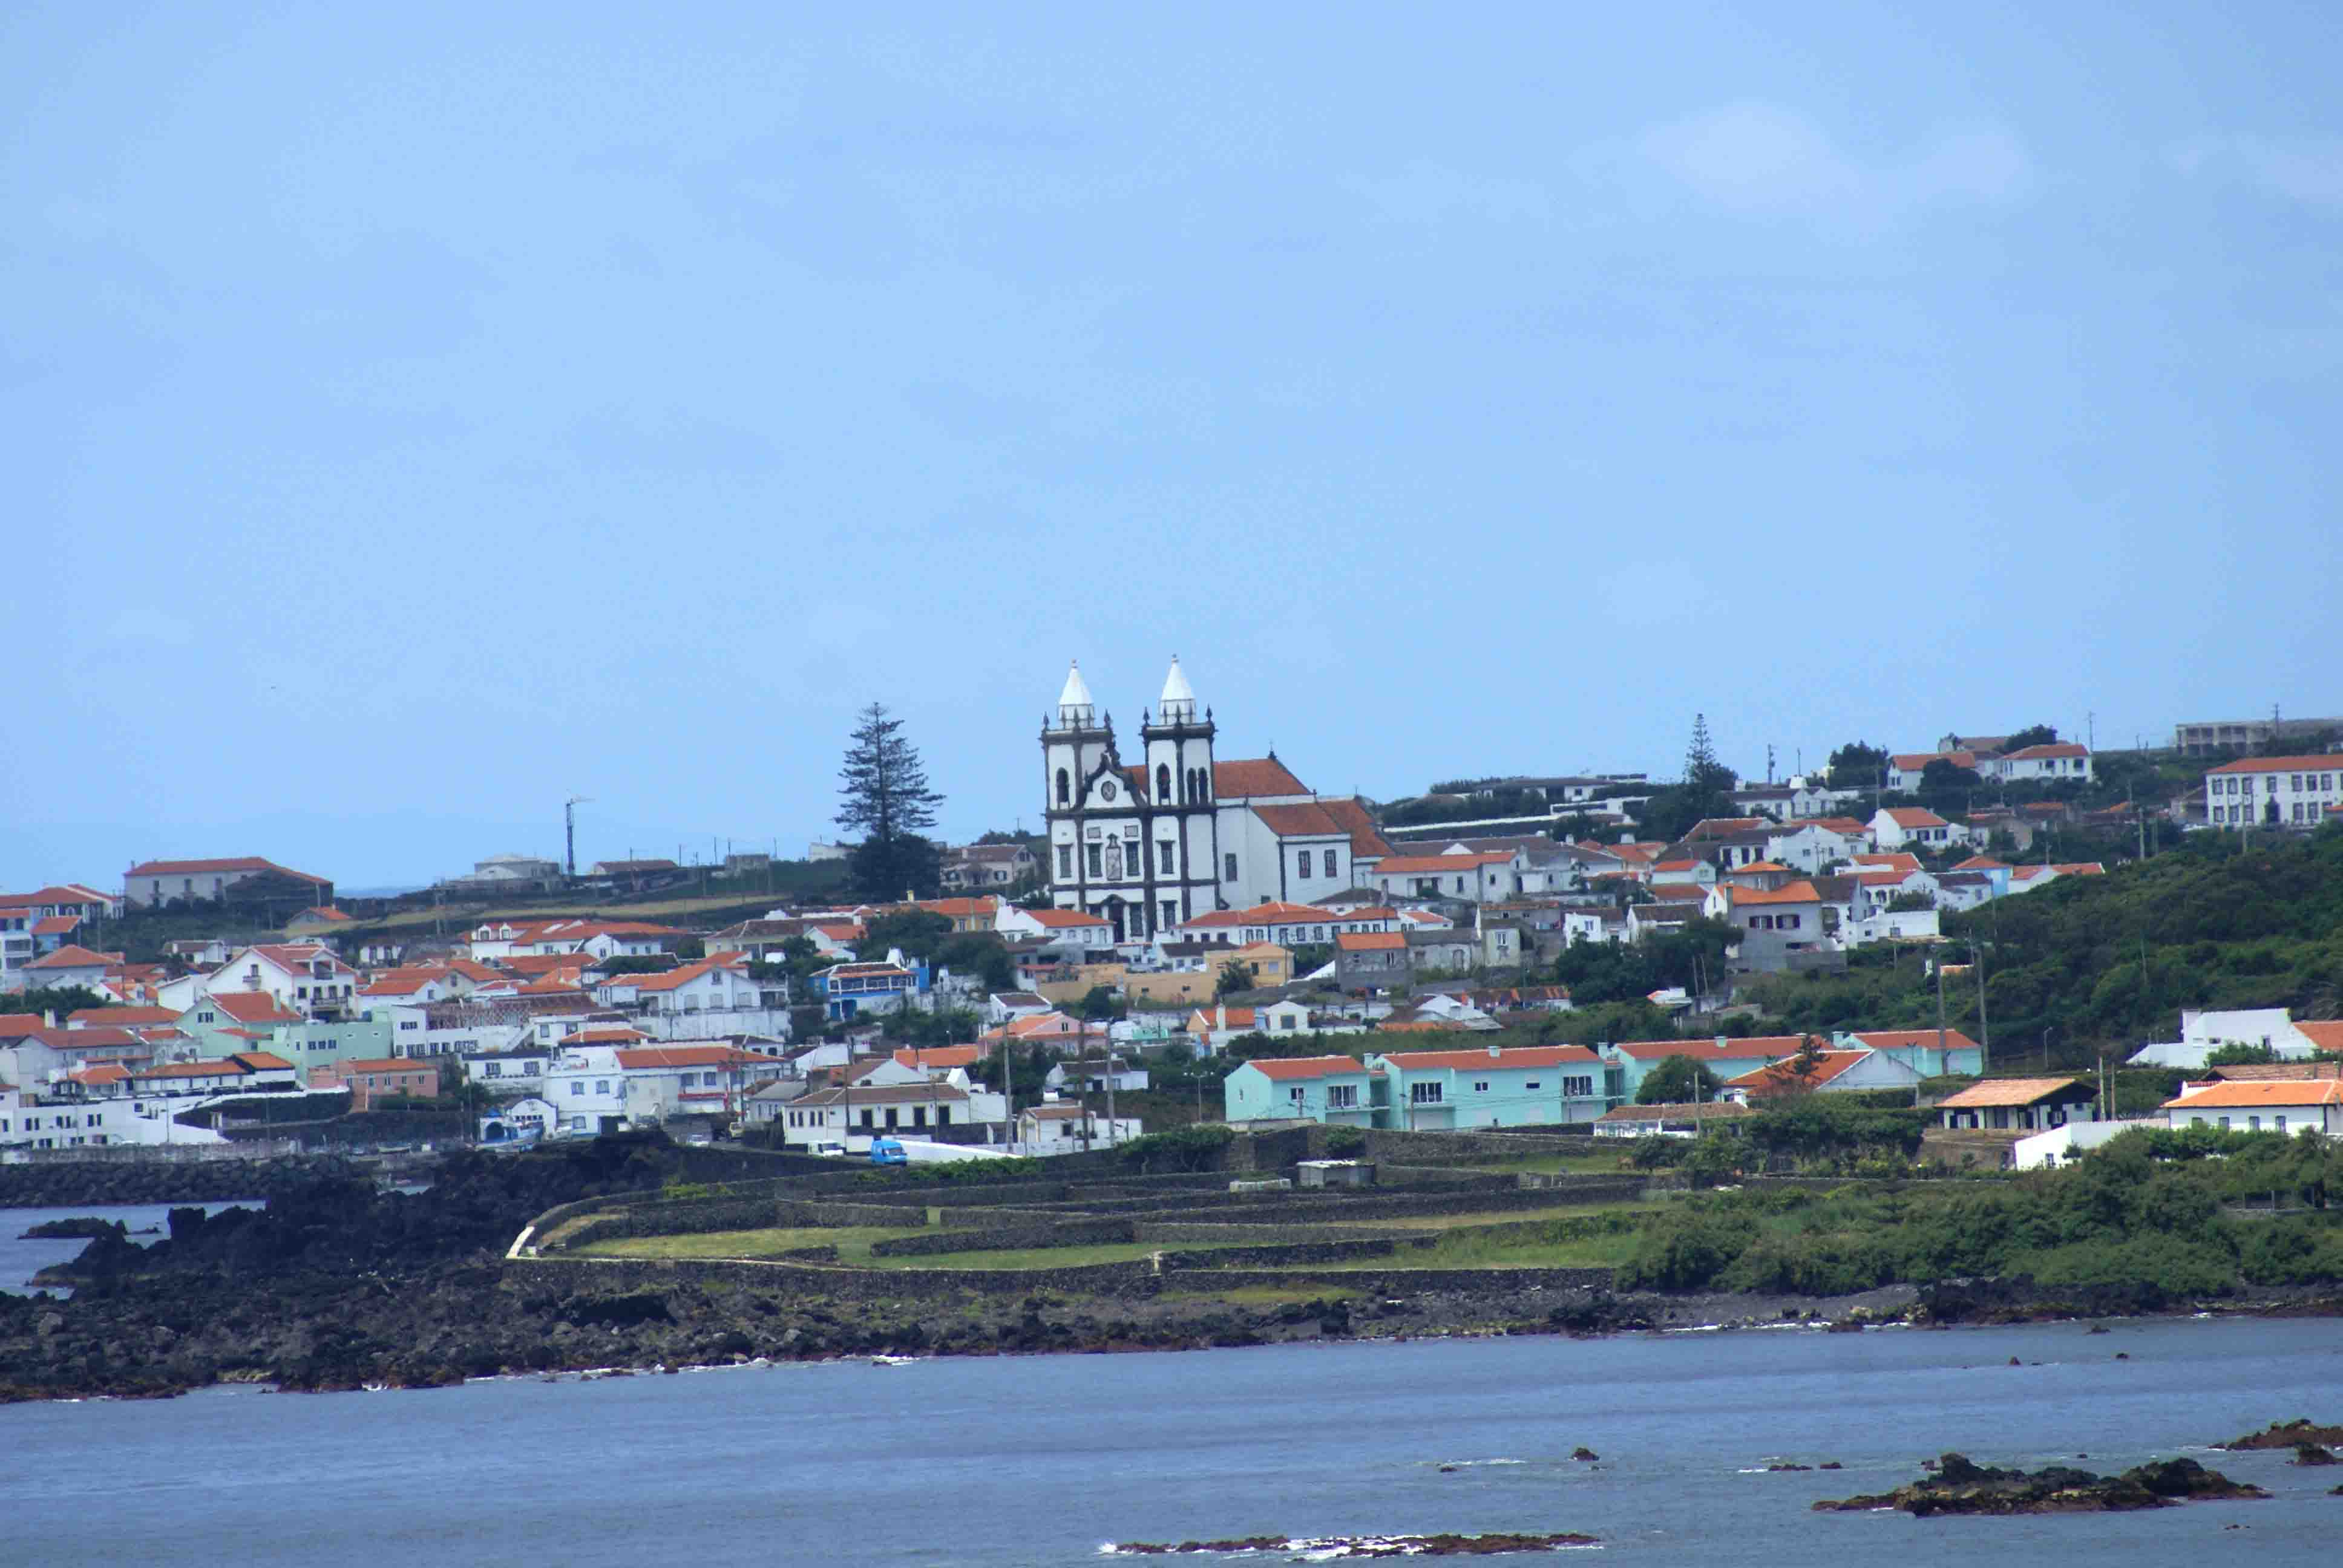 Angra Do Heroismo Portugal  City new picture : ... da Calheta, Angra do Heroísmo, ilha Terceira, Açores, Portugal